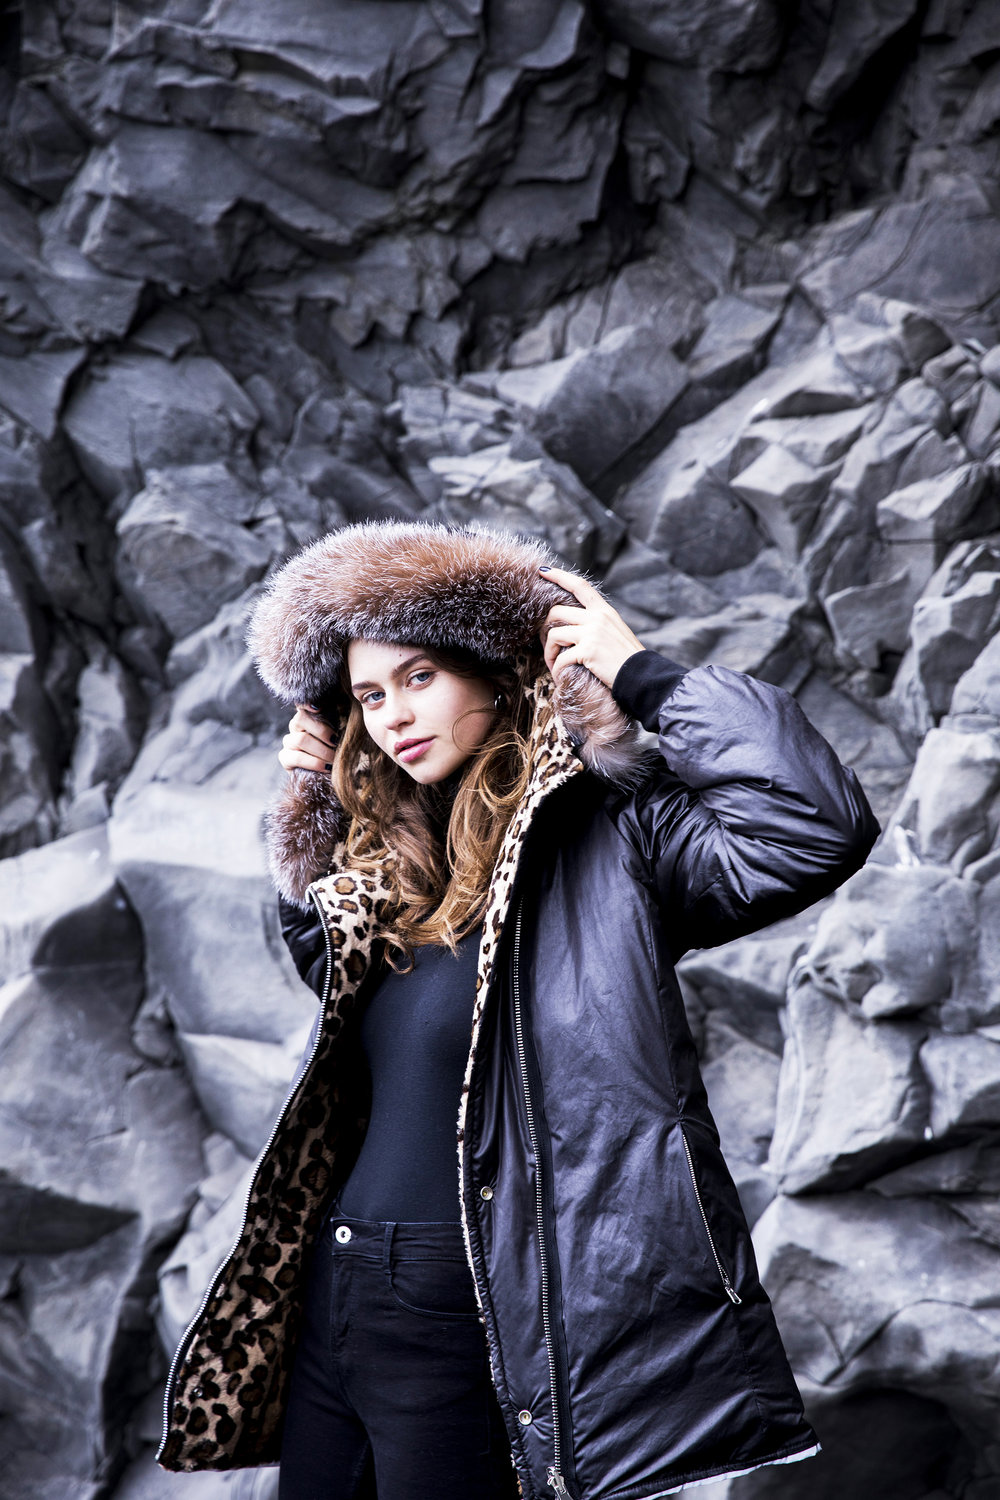 SAGA Parka in Snow Leopard by Therma Kota